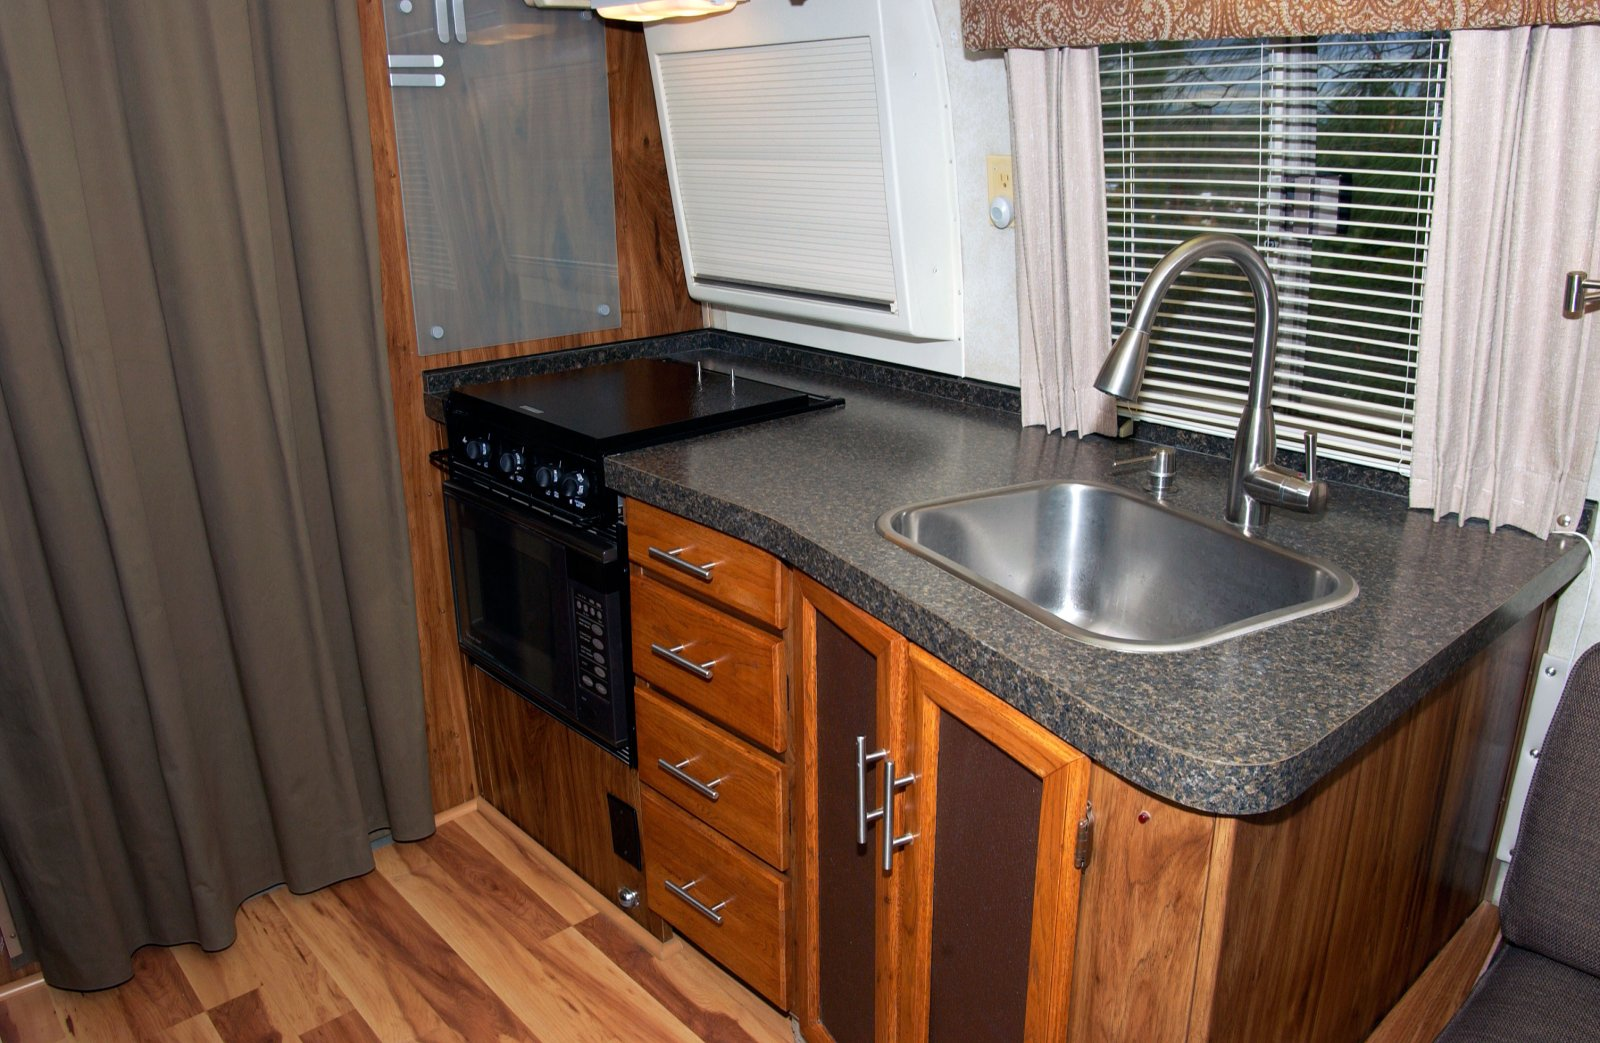 Click image for larger version  Name:Galley-Sink-web.jpg Views:93 Size:305.5 KB ID:225295